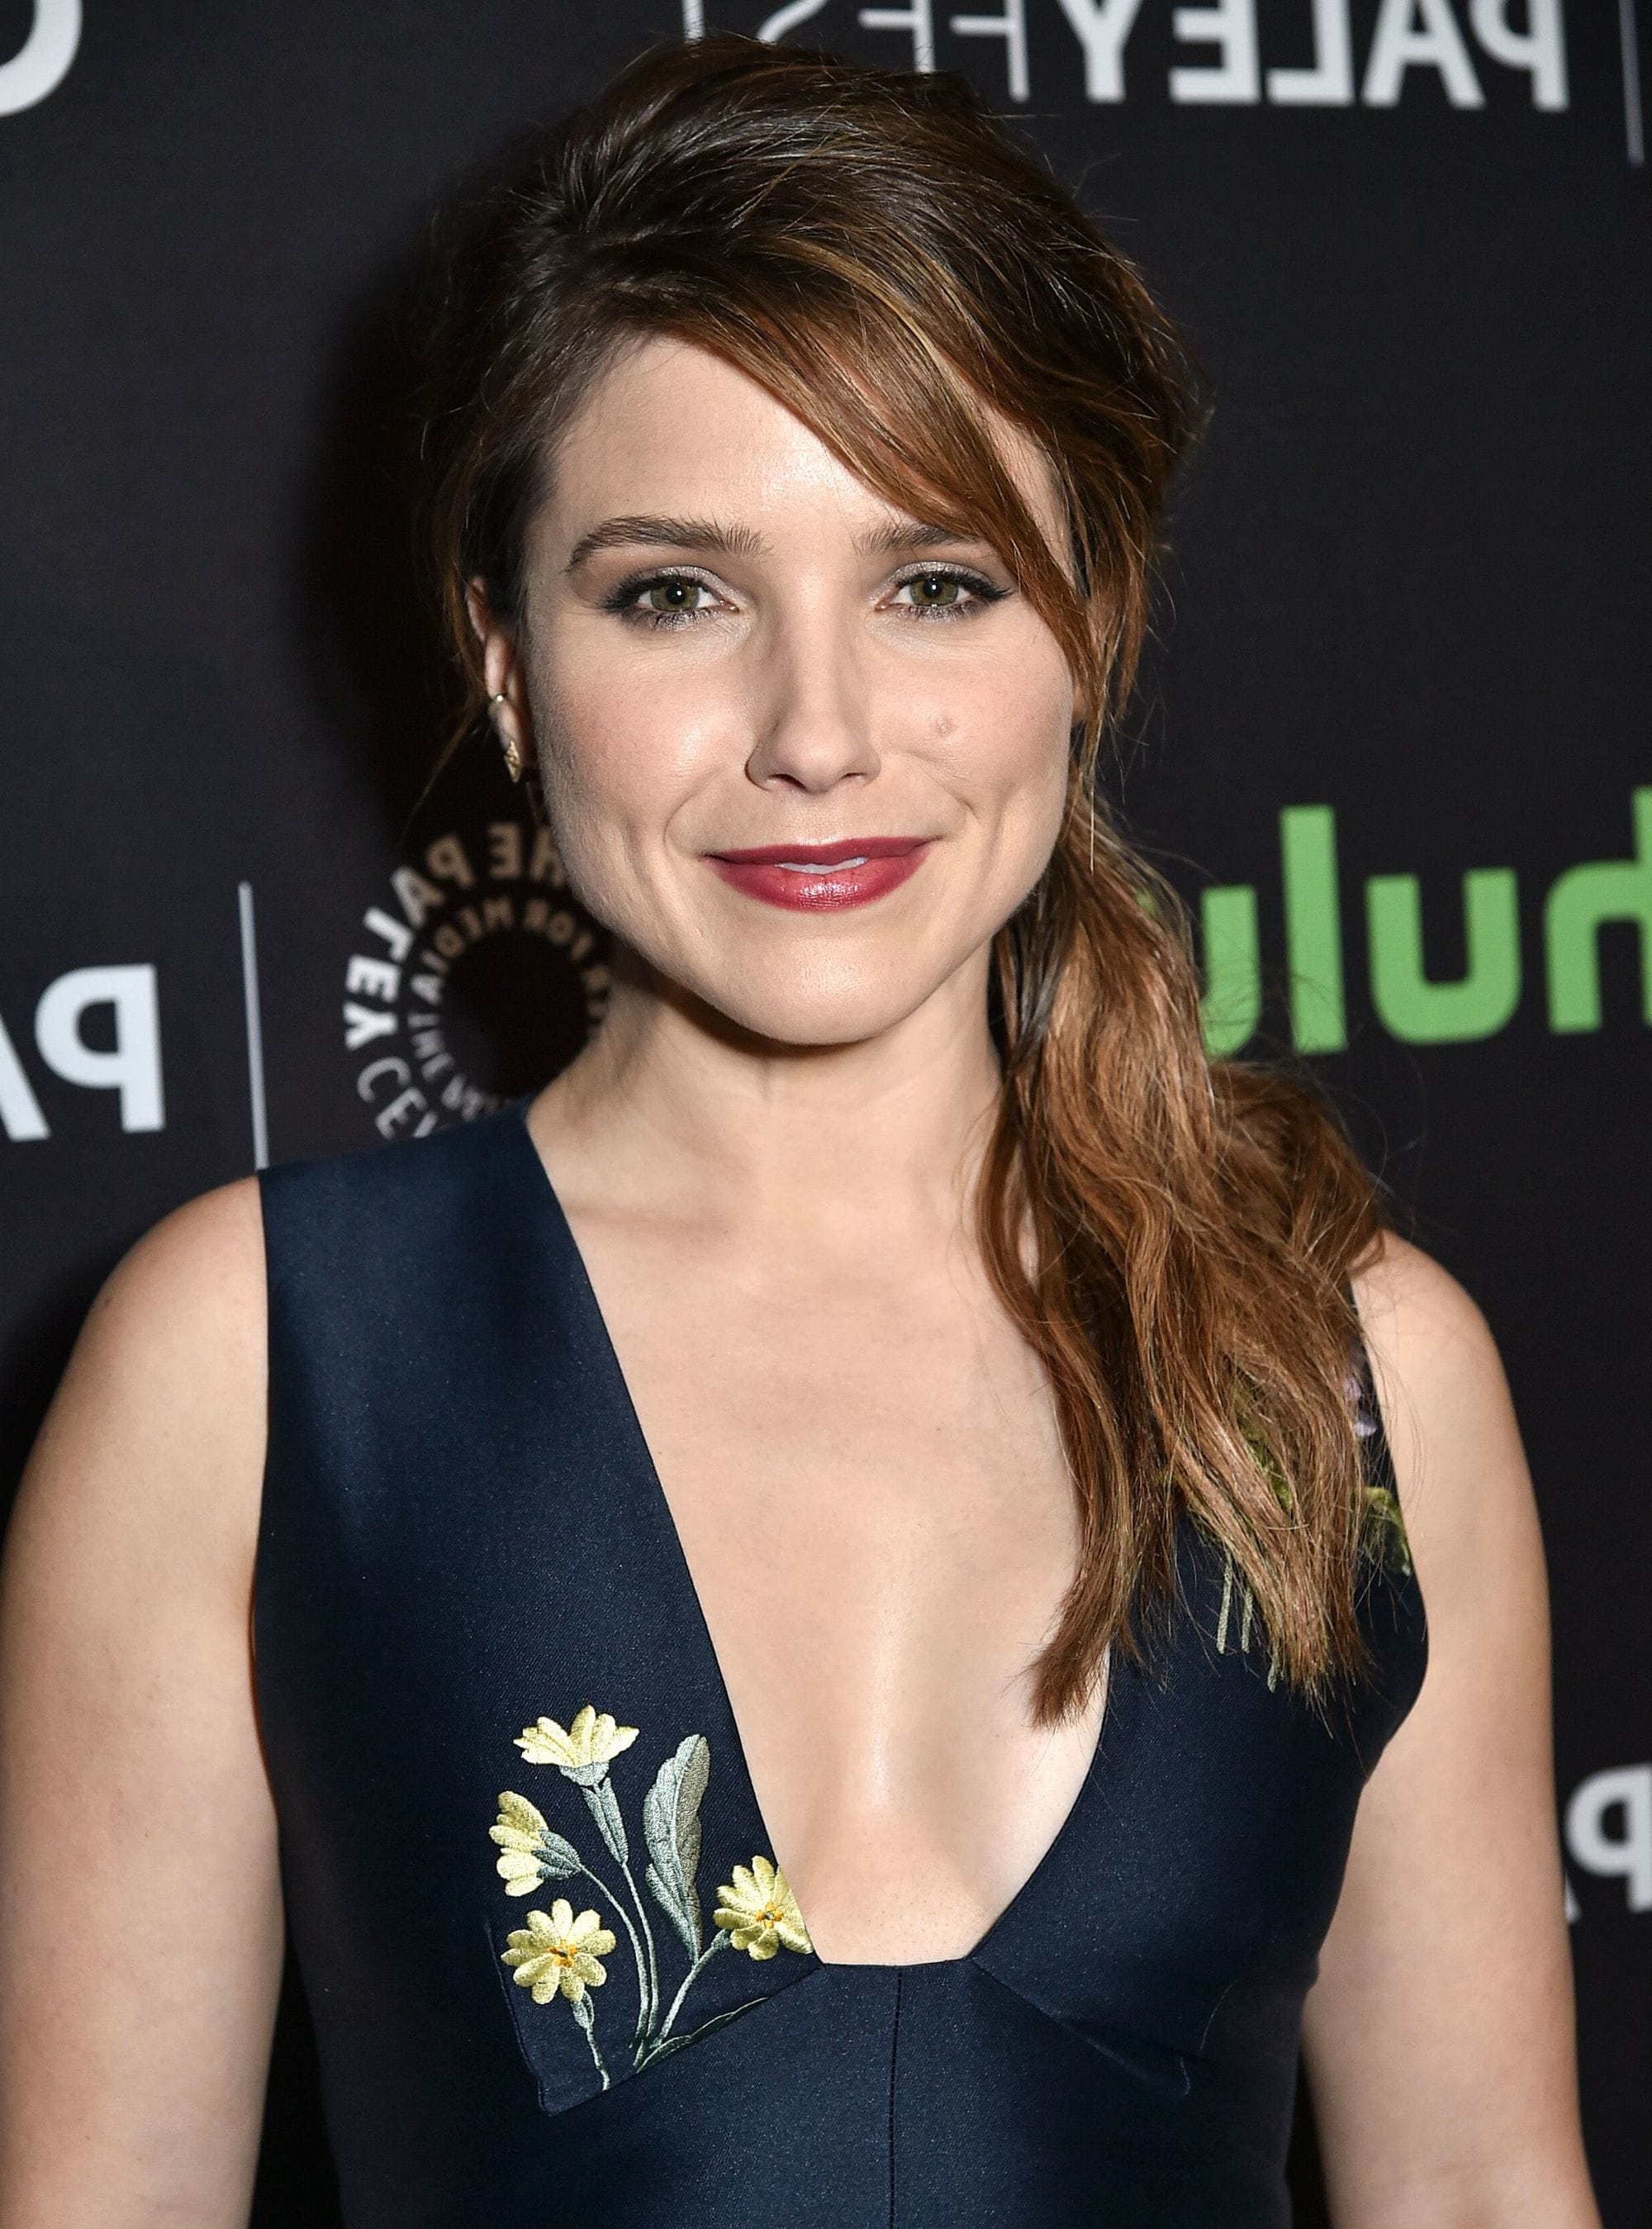 Ponytail With Bangs: 7 Fresh New Ways To Wear The Style | All Things Pertaining To Sophia Bush Short Hairstyles (View 4 of 25)